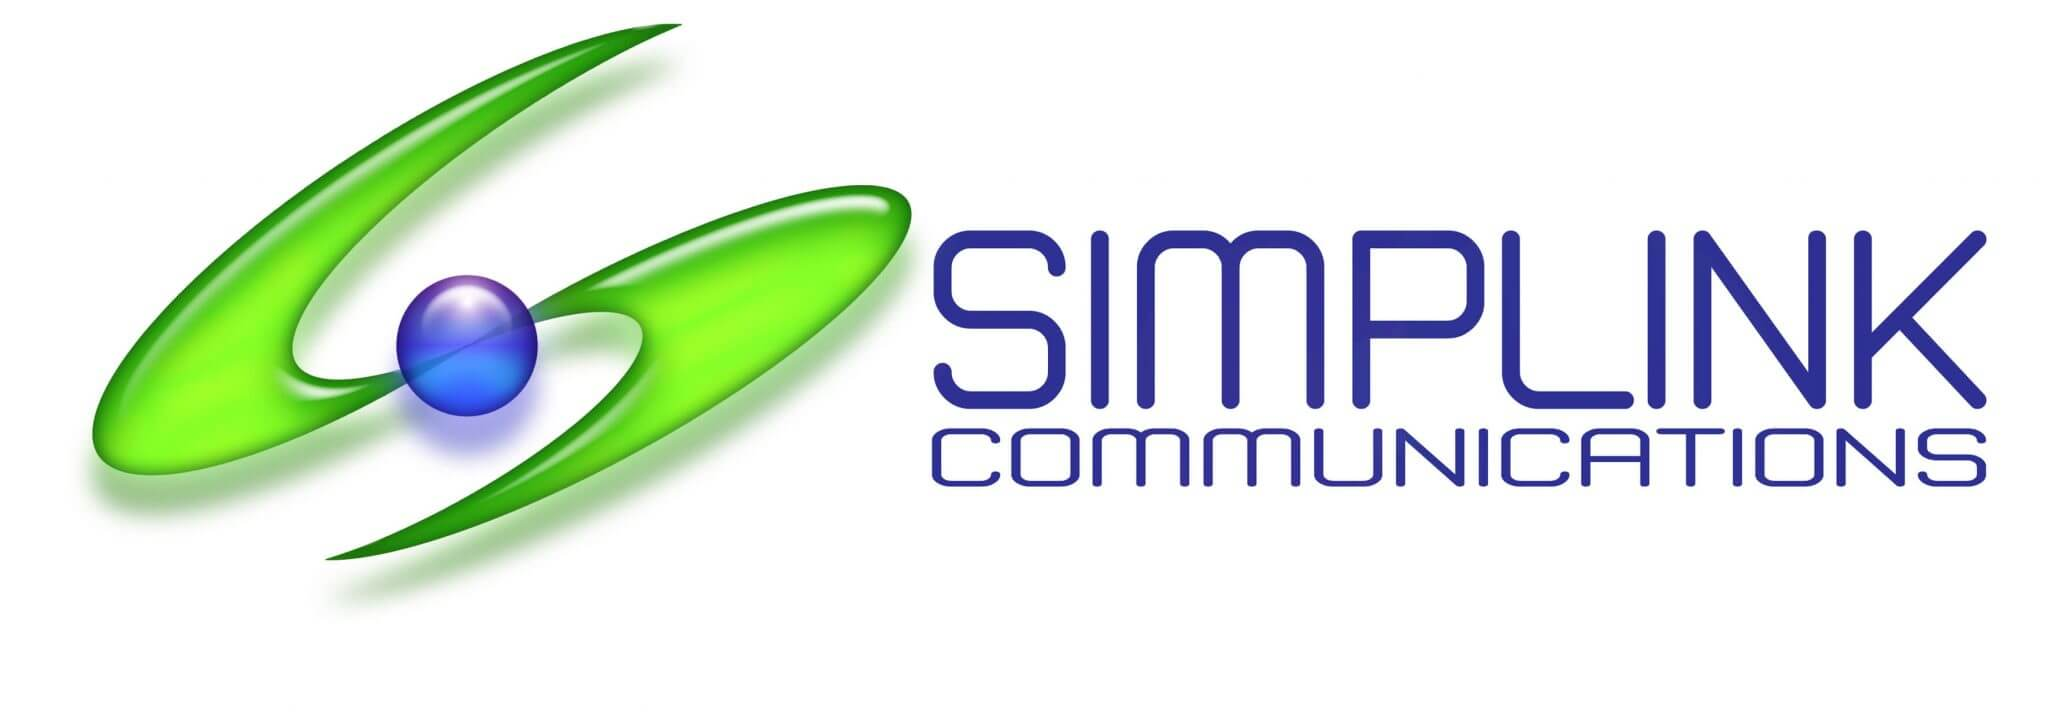 Simplink Communications